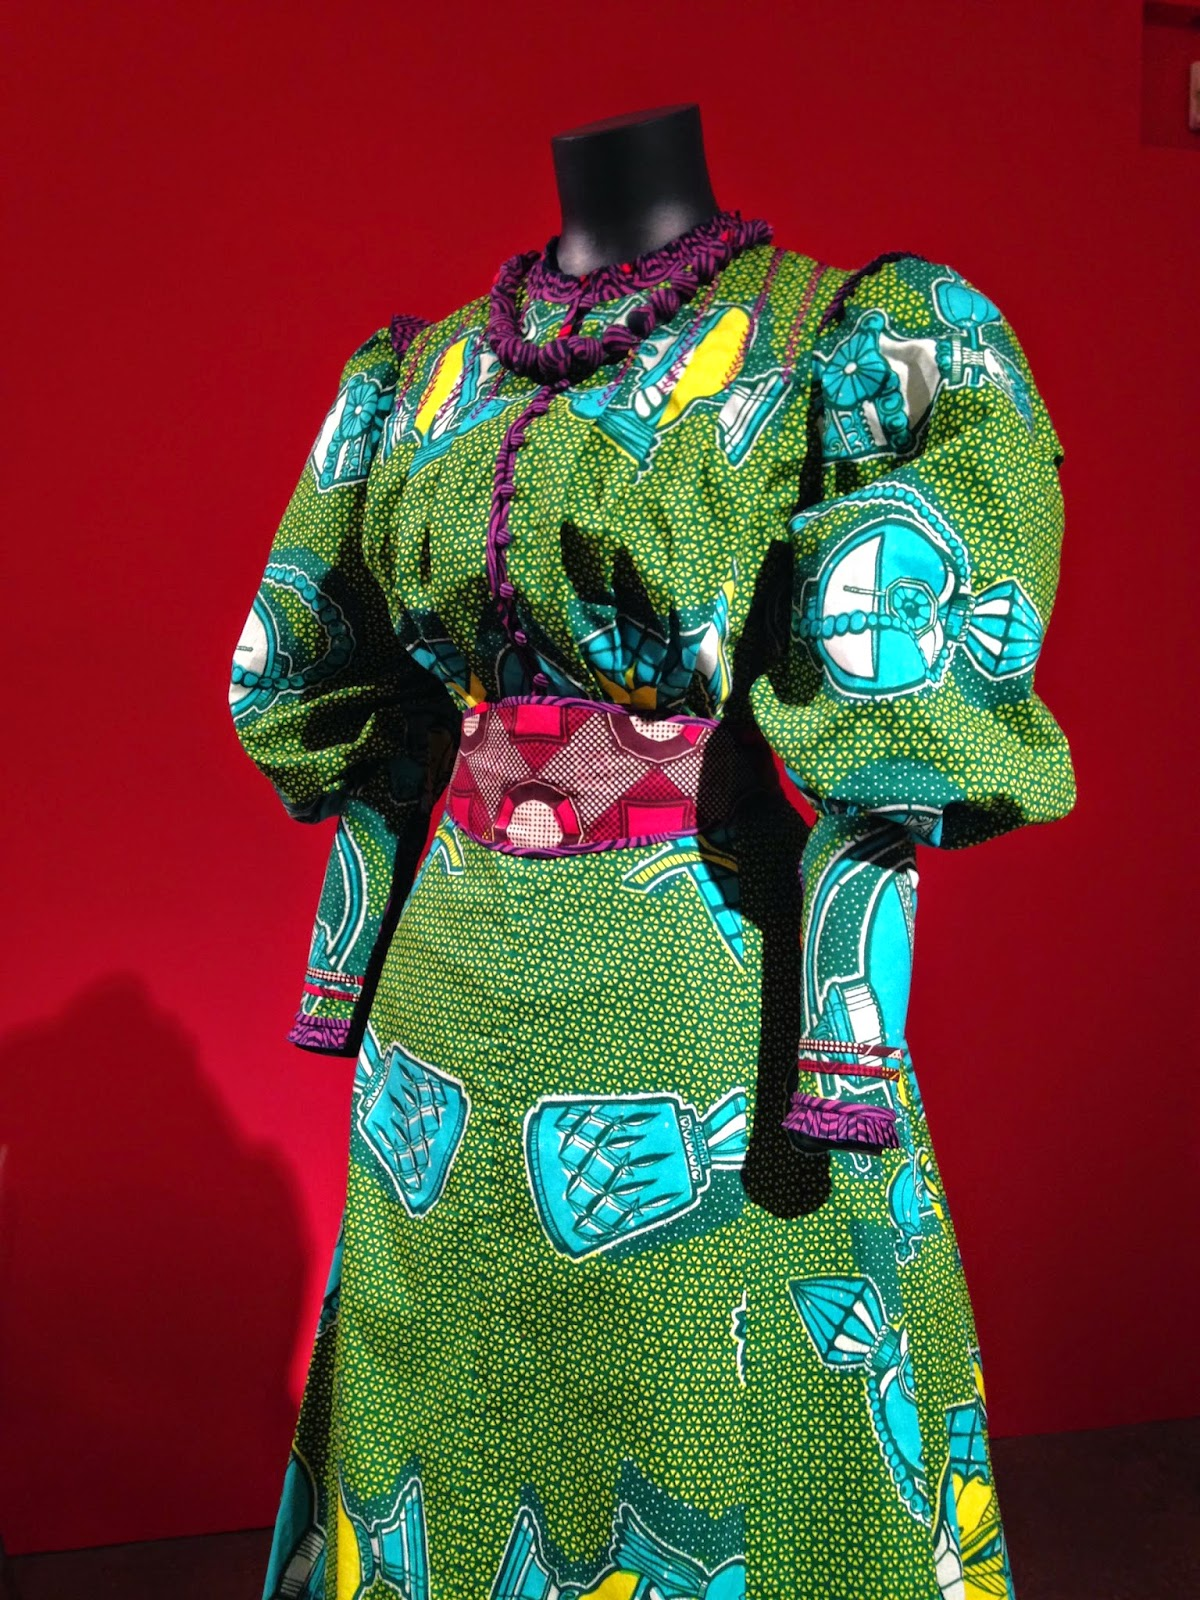 fredbutlerstyle: Thursday 26th Feb: Yinka Shonibare ...